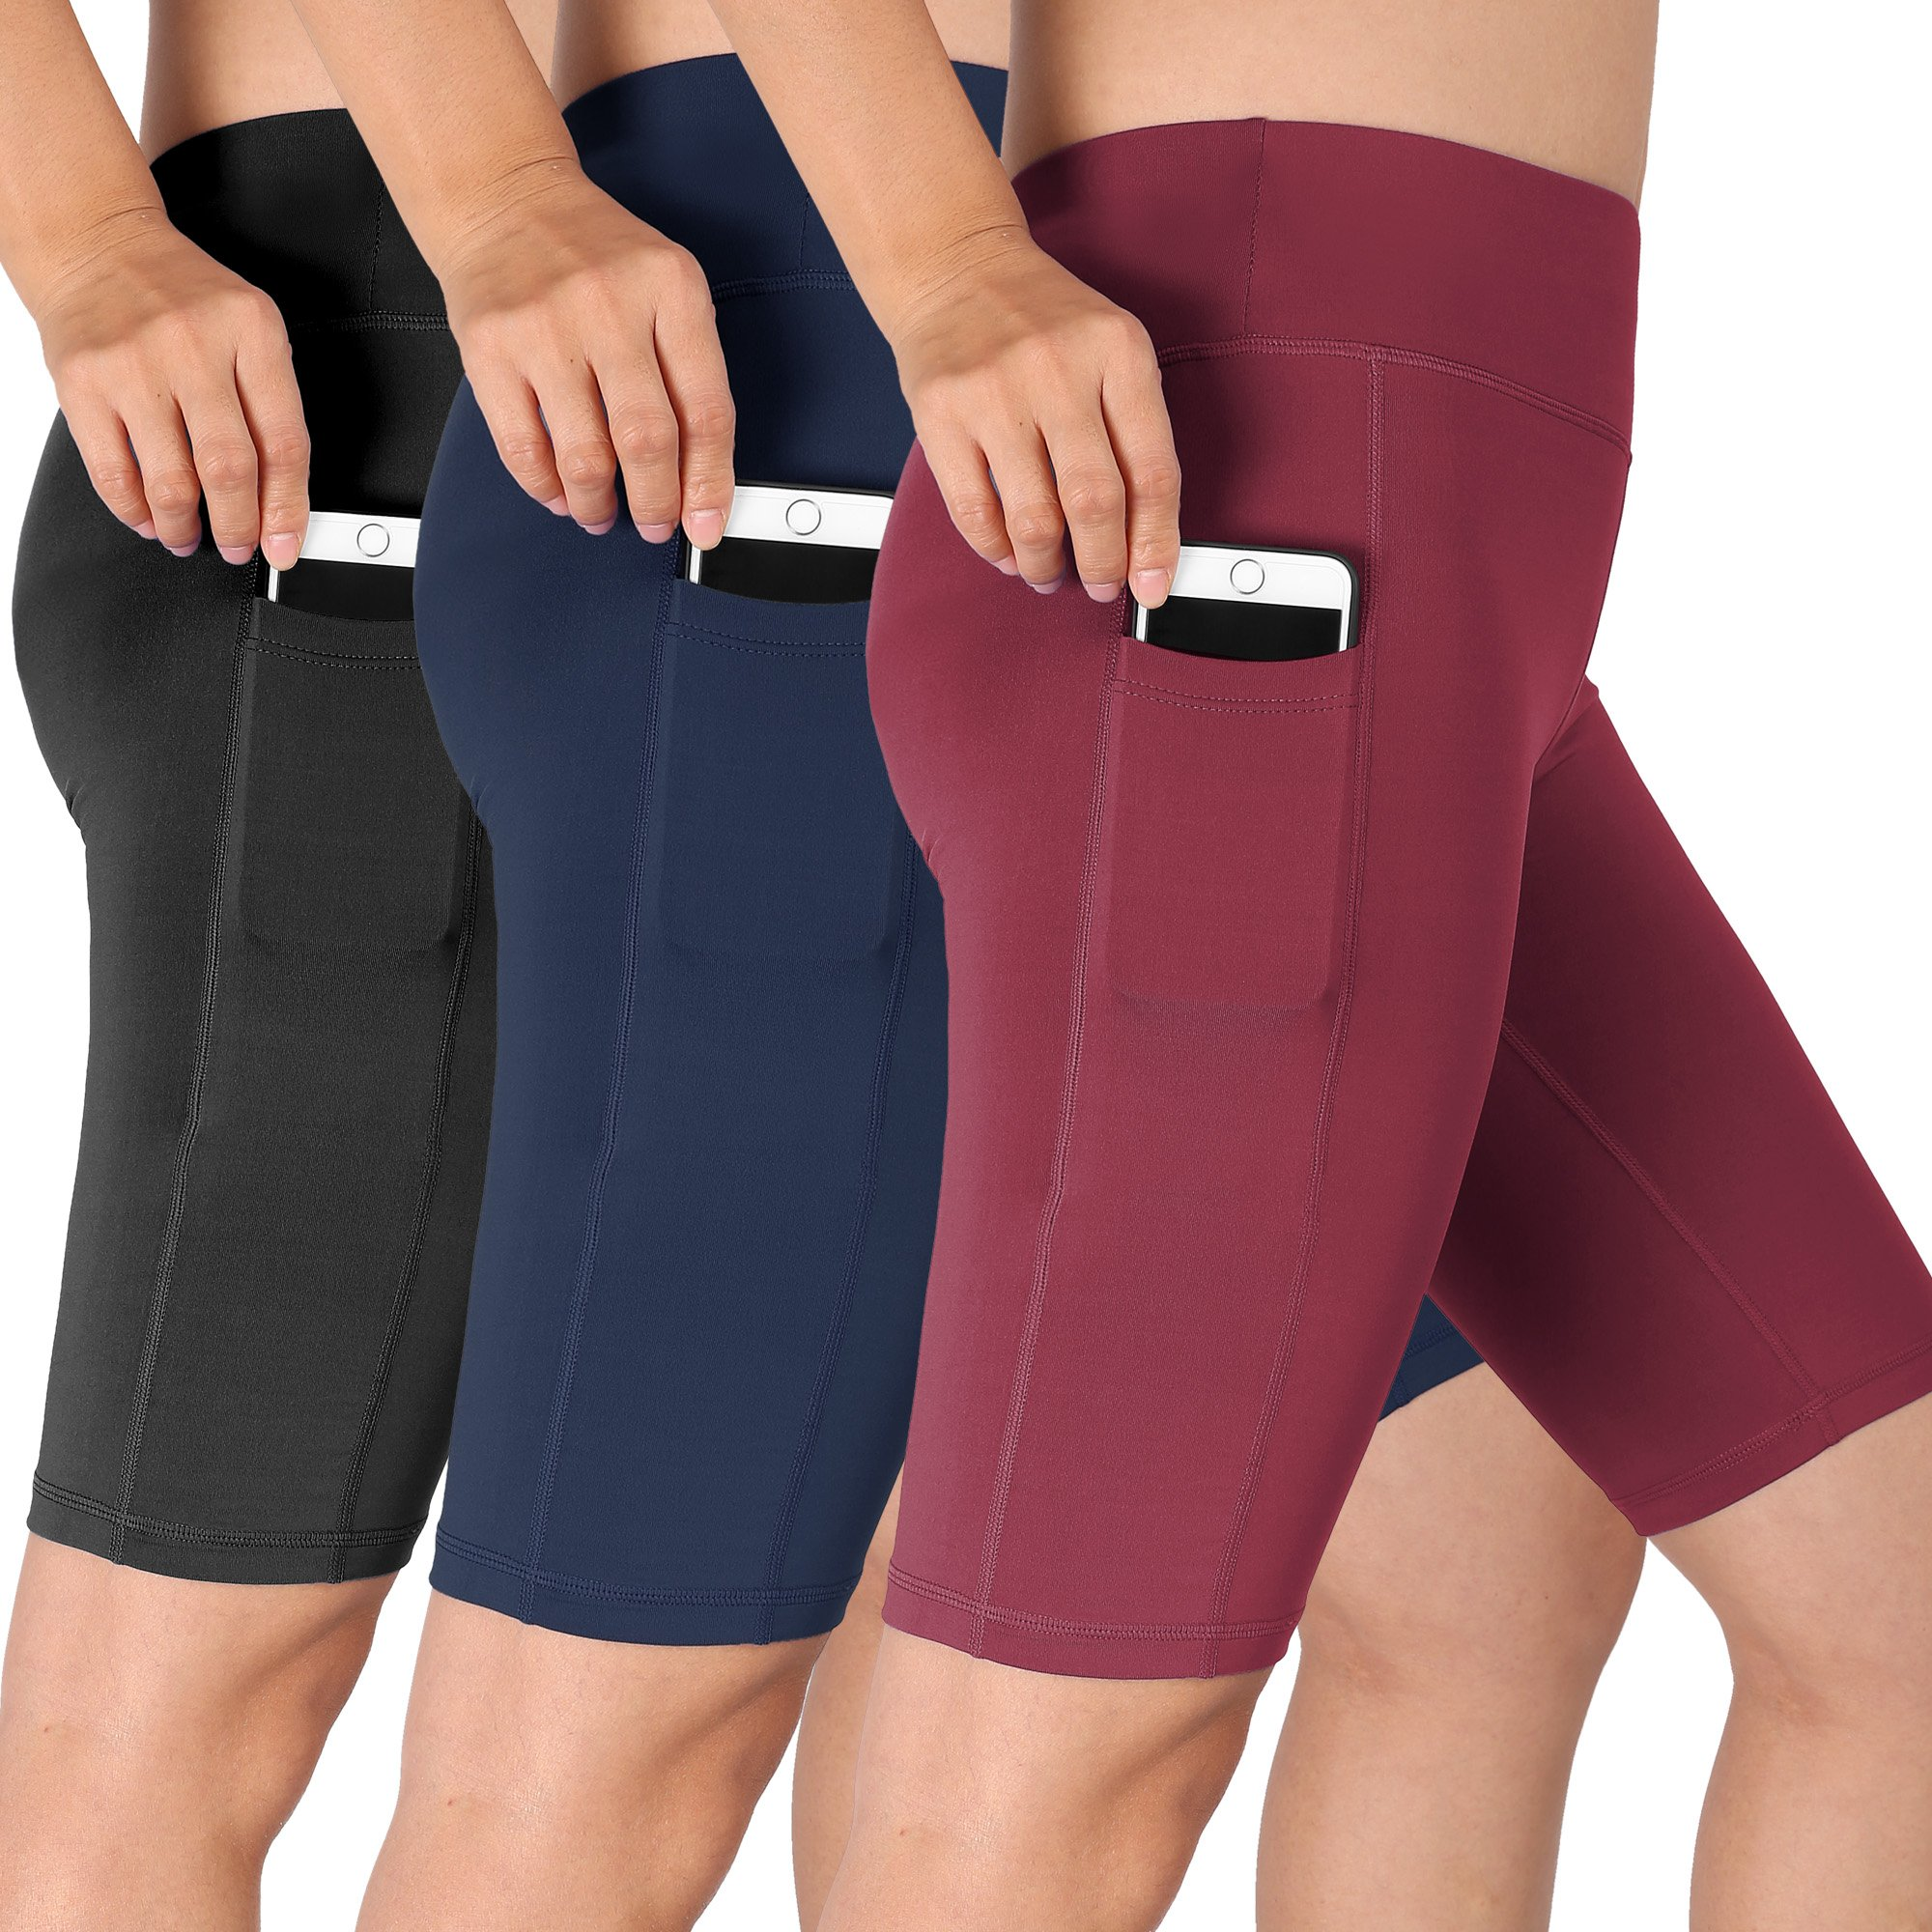 Cadmus Women's High Waist Athletic Running Workout Shorts with Pocket,3 Pack,06,Black,Navy Blue,Wine Red,X-Large